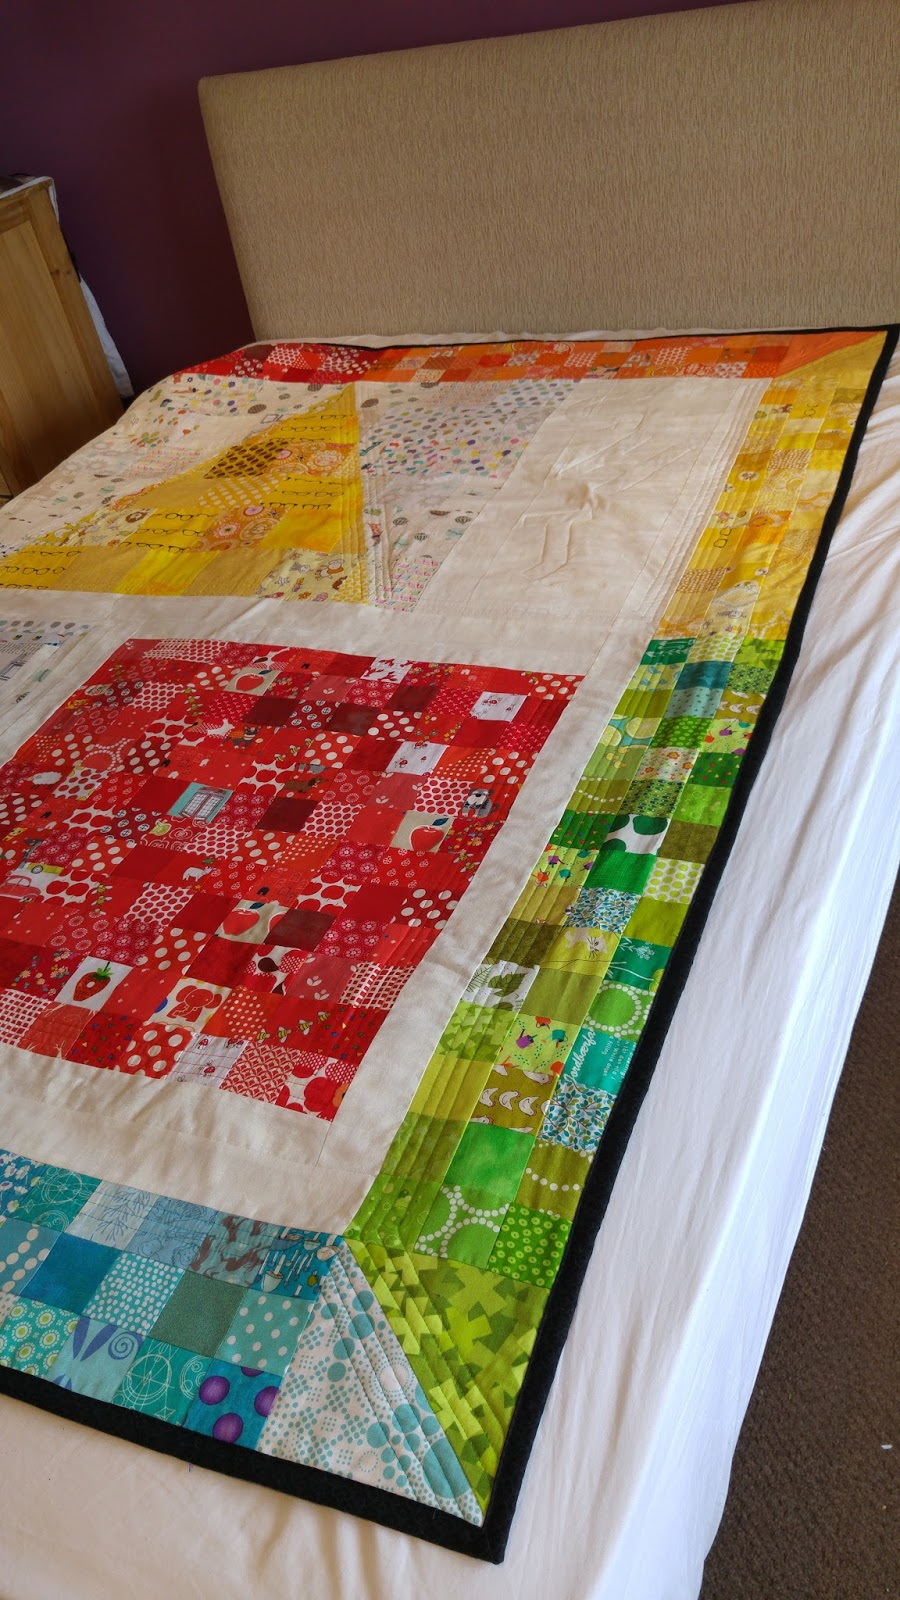 Stitch and pieces for Space shuttle quilt